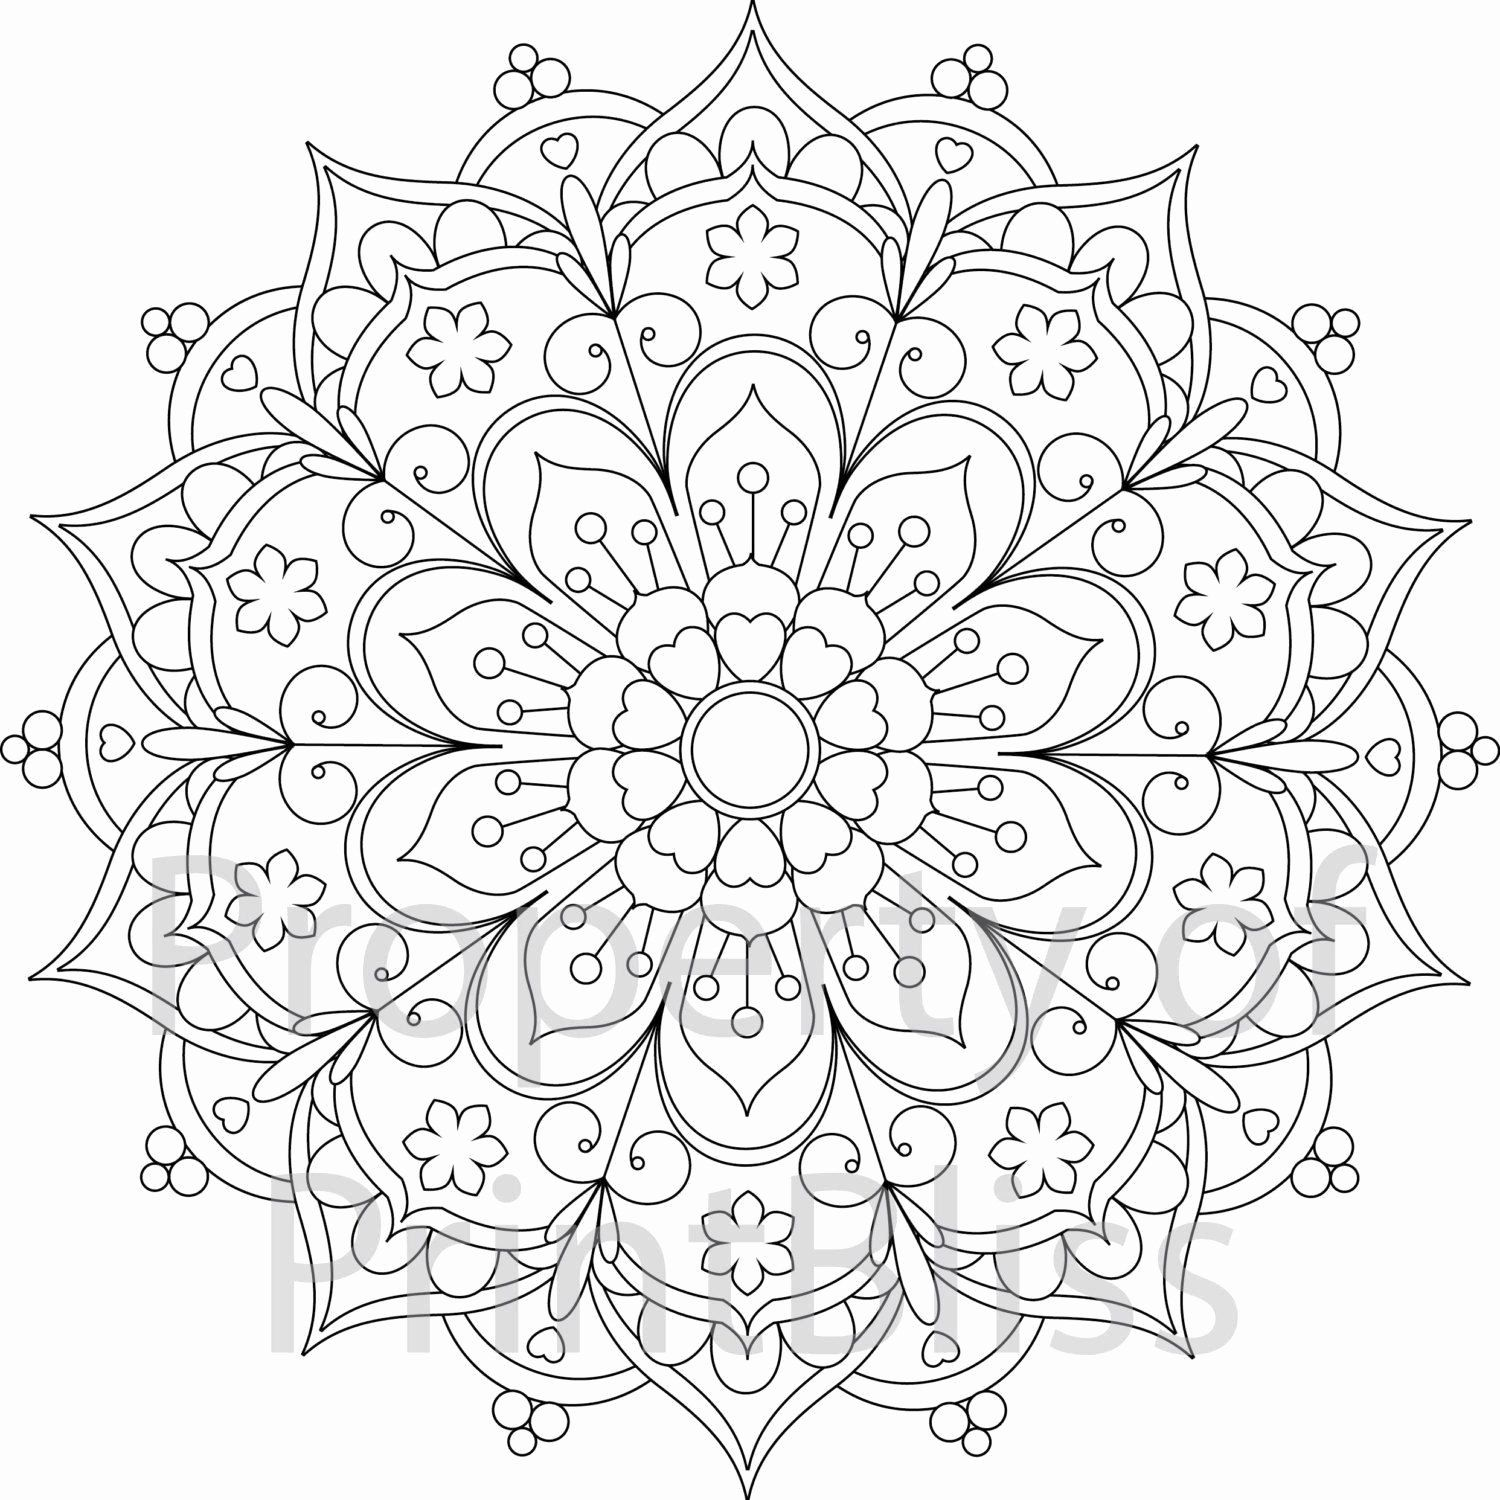 - Flowers Coloring Book Pdf Beautiful Coloring Book For Me And Mandala Fresh  Flowers Abstract In 2020